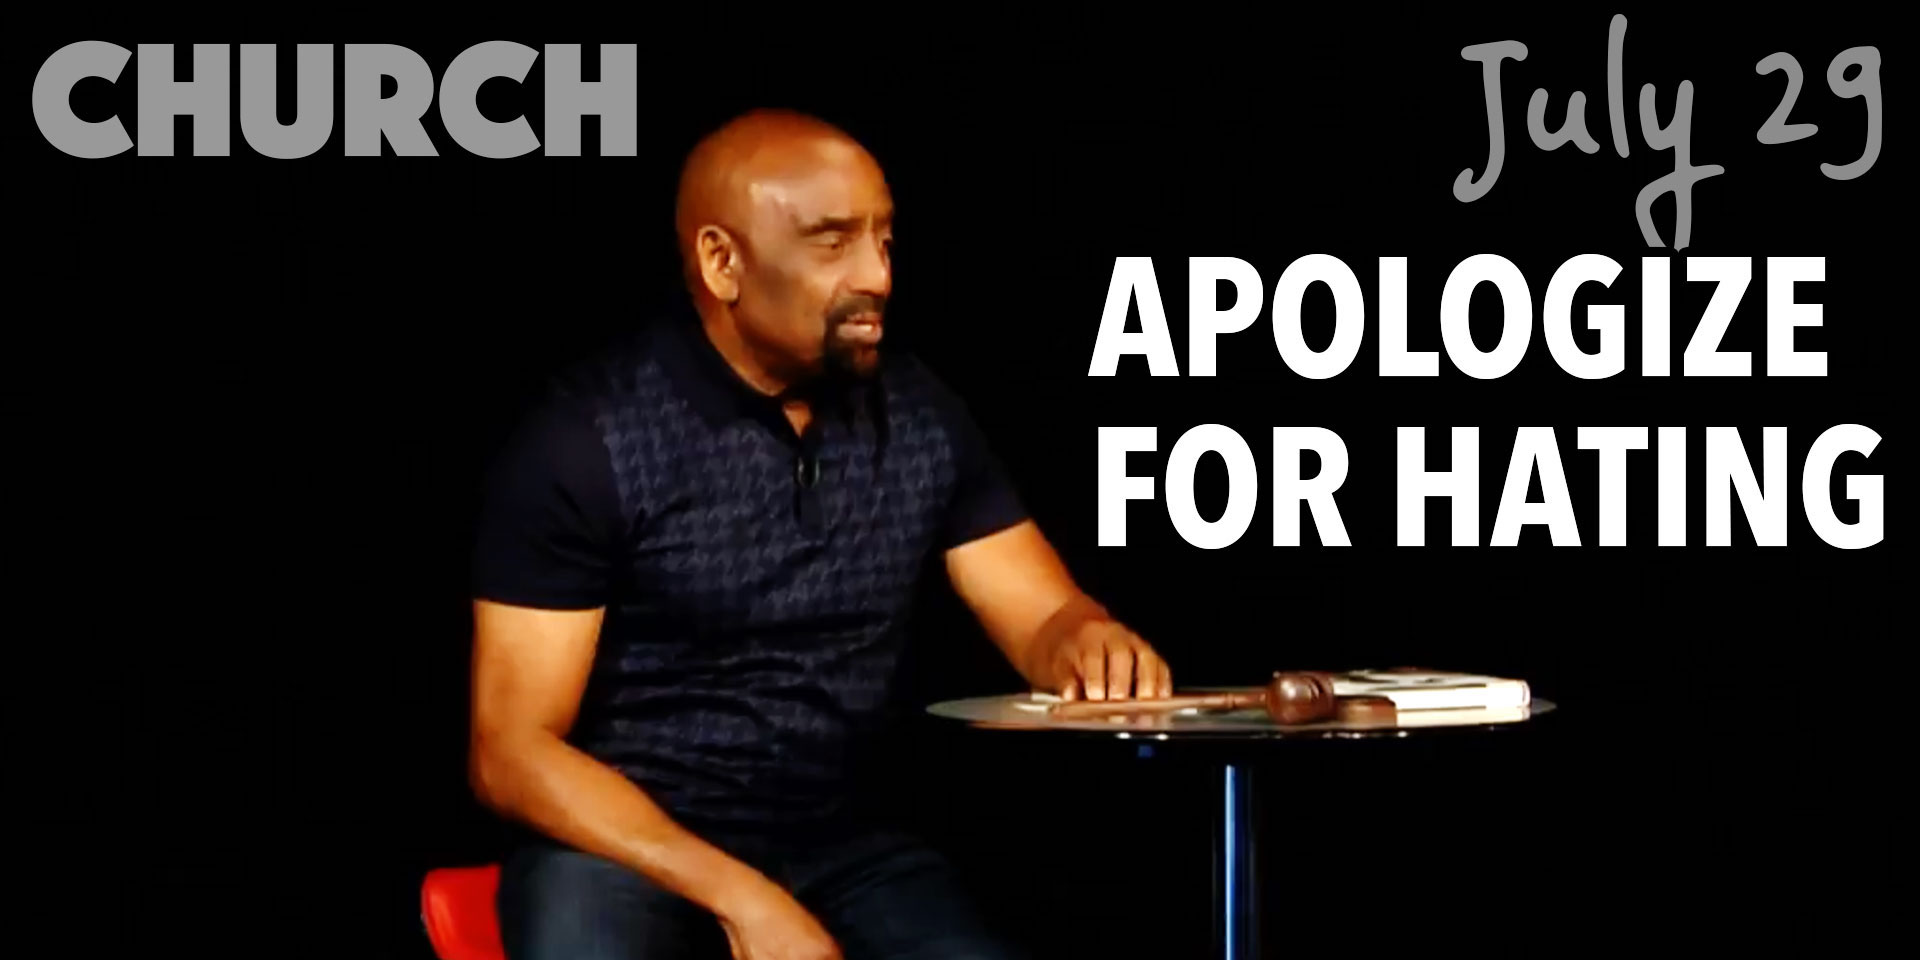 Church July 29, Apologize for Hating